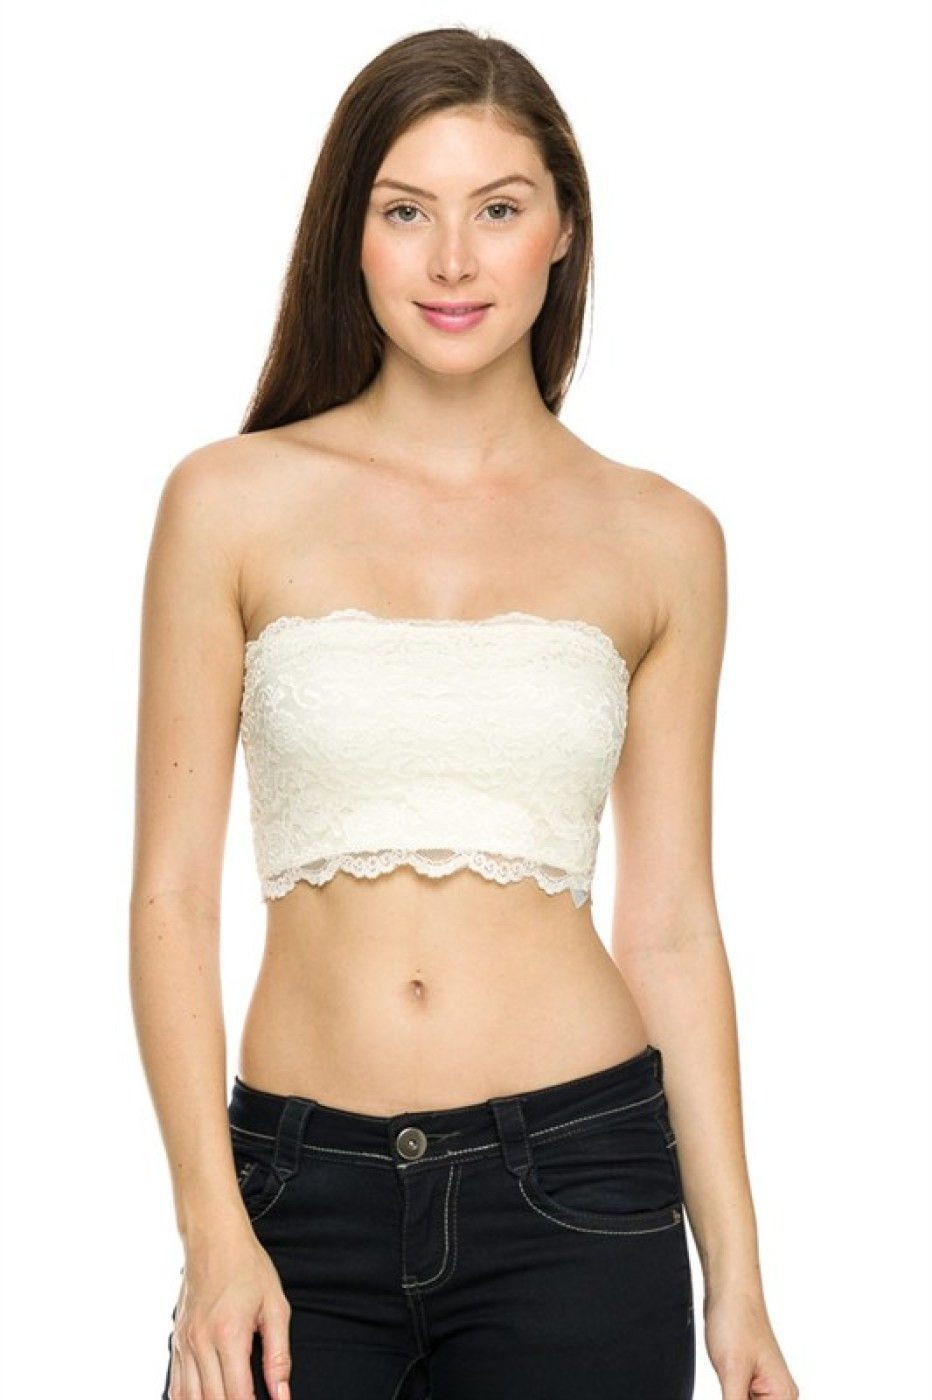 Strapless Lace Bandeau Bra Top | Lace, Bandeaus and Lace bandeau bra